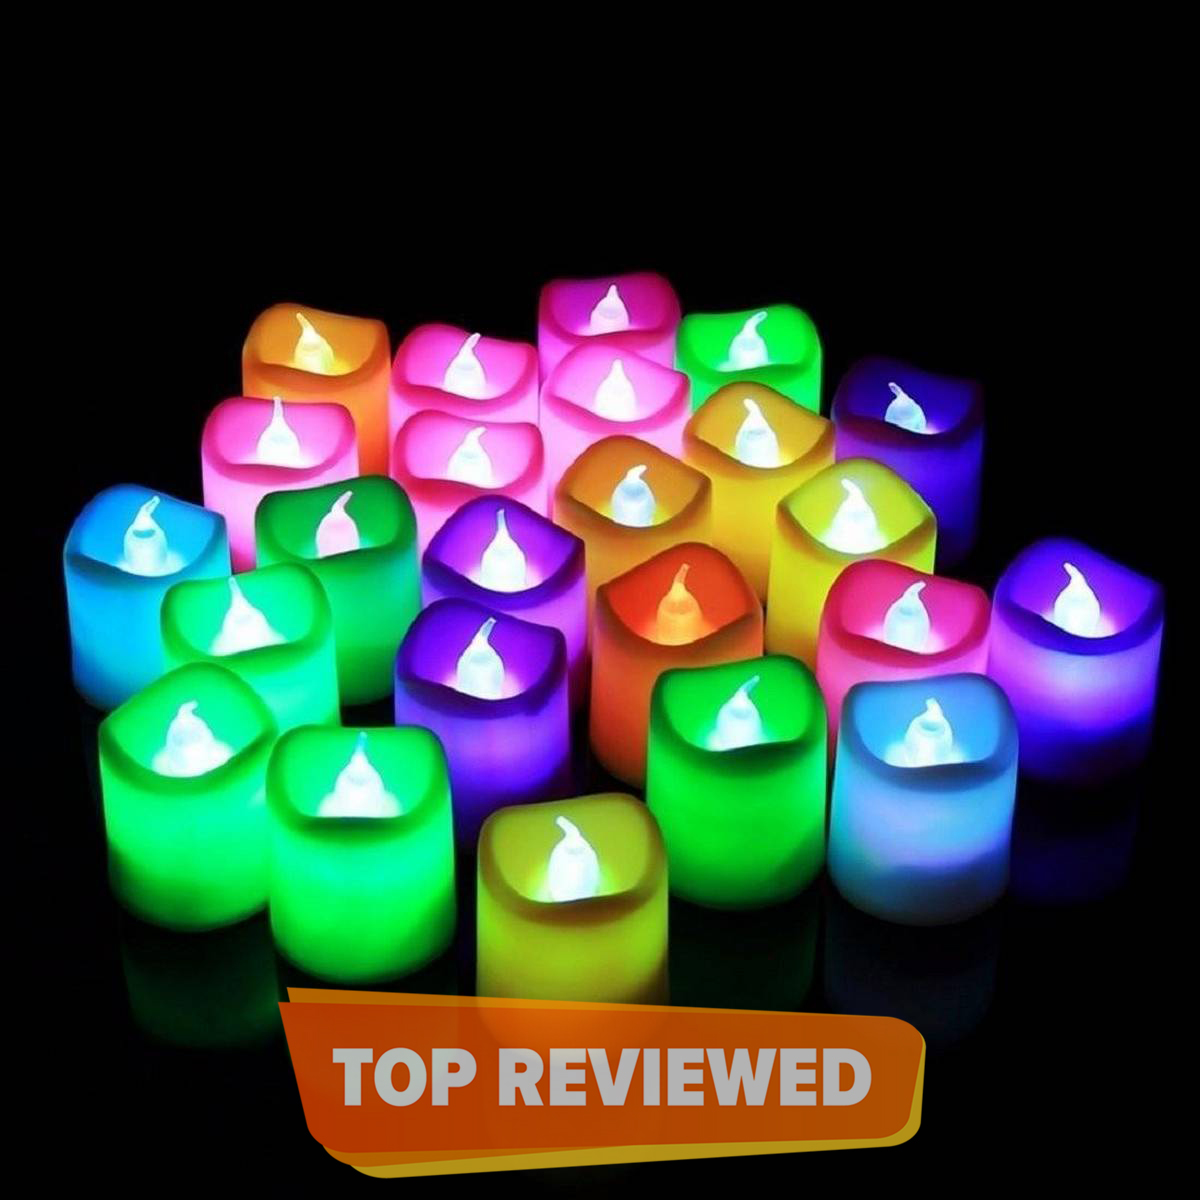 Pack of 12 -Magic Colour Changing LED Glowing Tea Light Flameless Candles - Multicolor